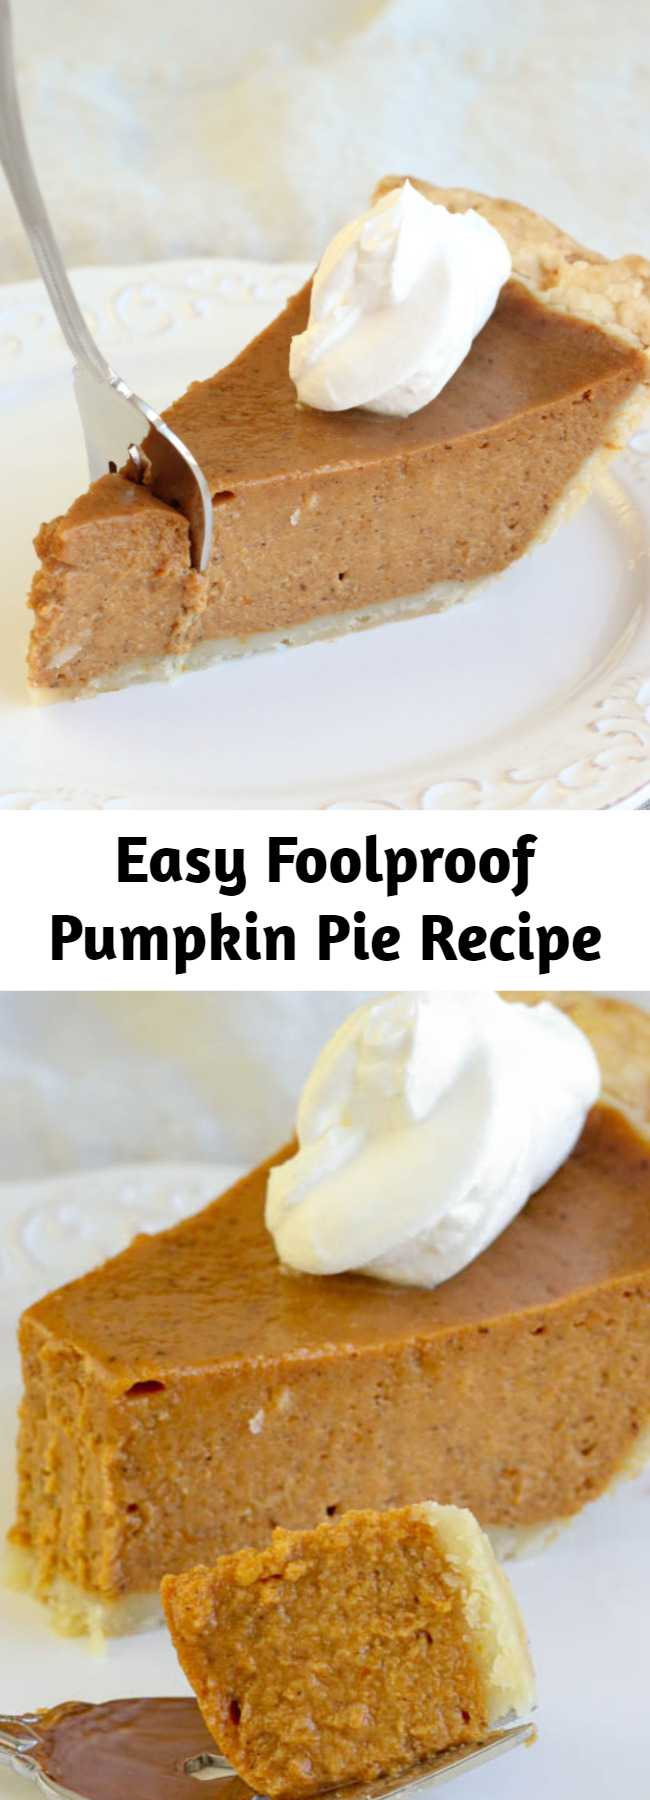 Easy Foolproof Pumpkin Pie Recipe - The best and easiest Pumpkin Pie recipe I've tried! It's creamy with the perfect amount of spice! This Pumpkin Pie will soon be a family favorite!